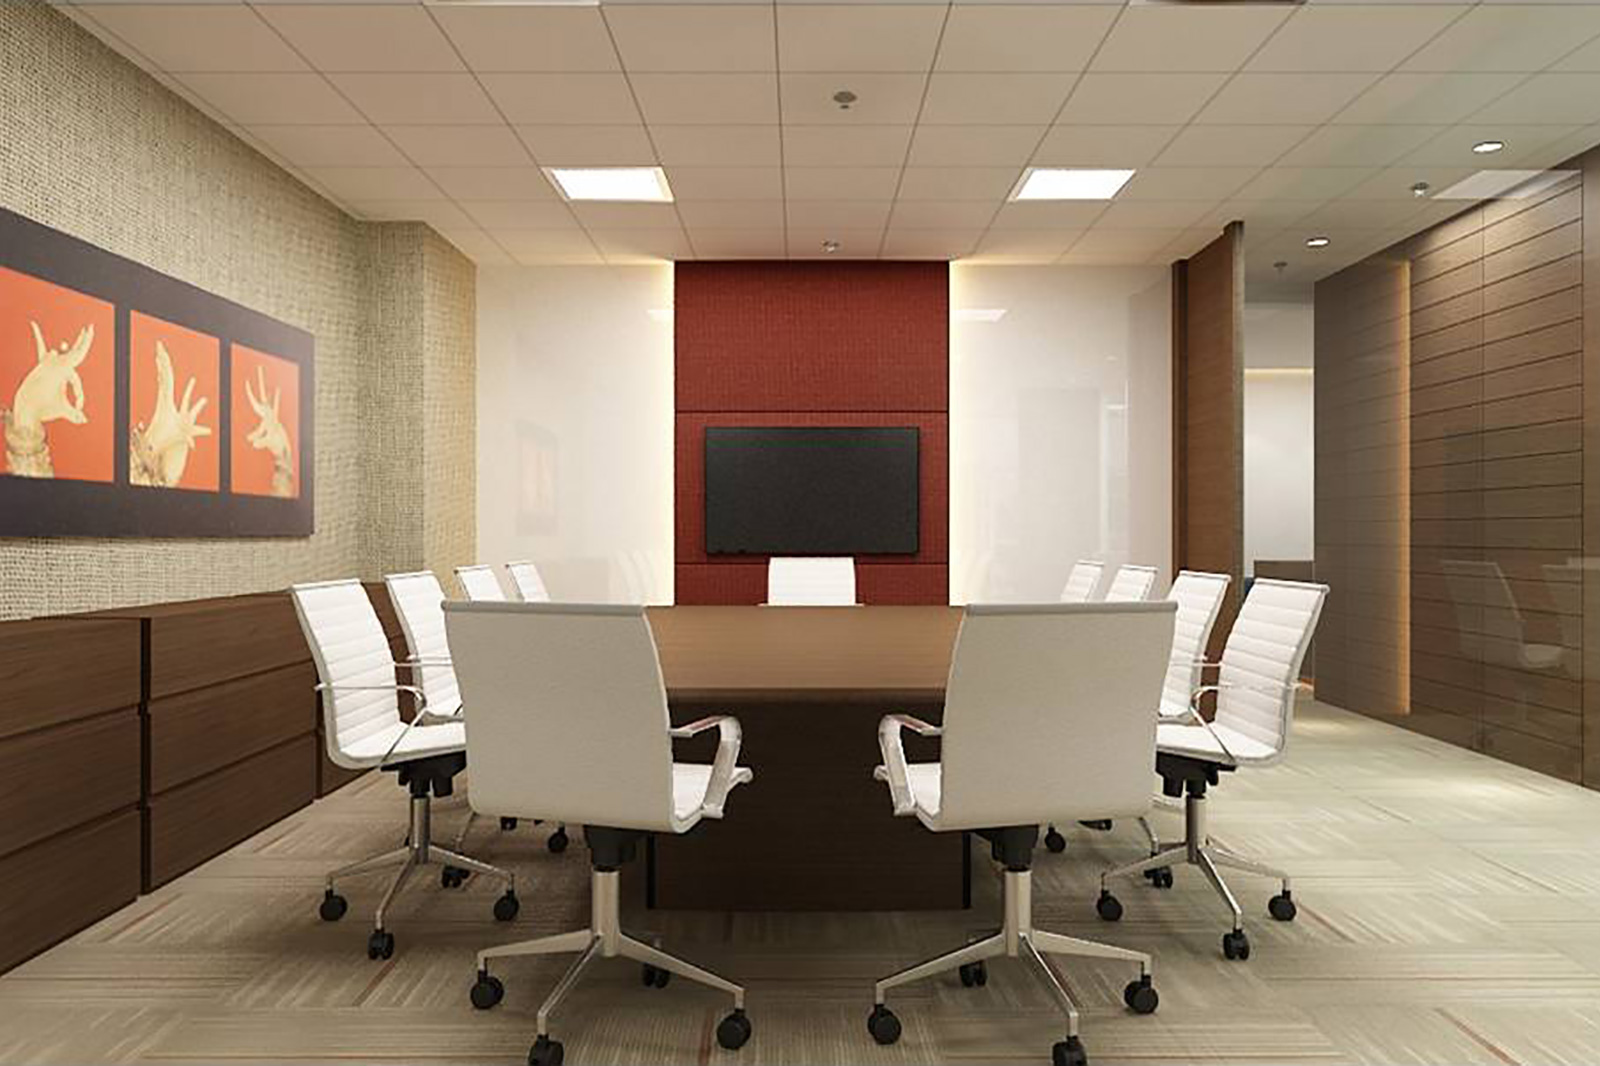 Superb Interiors For Officesu003c. Our Approach While Designing Commercial ...